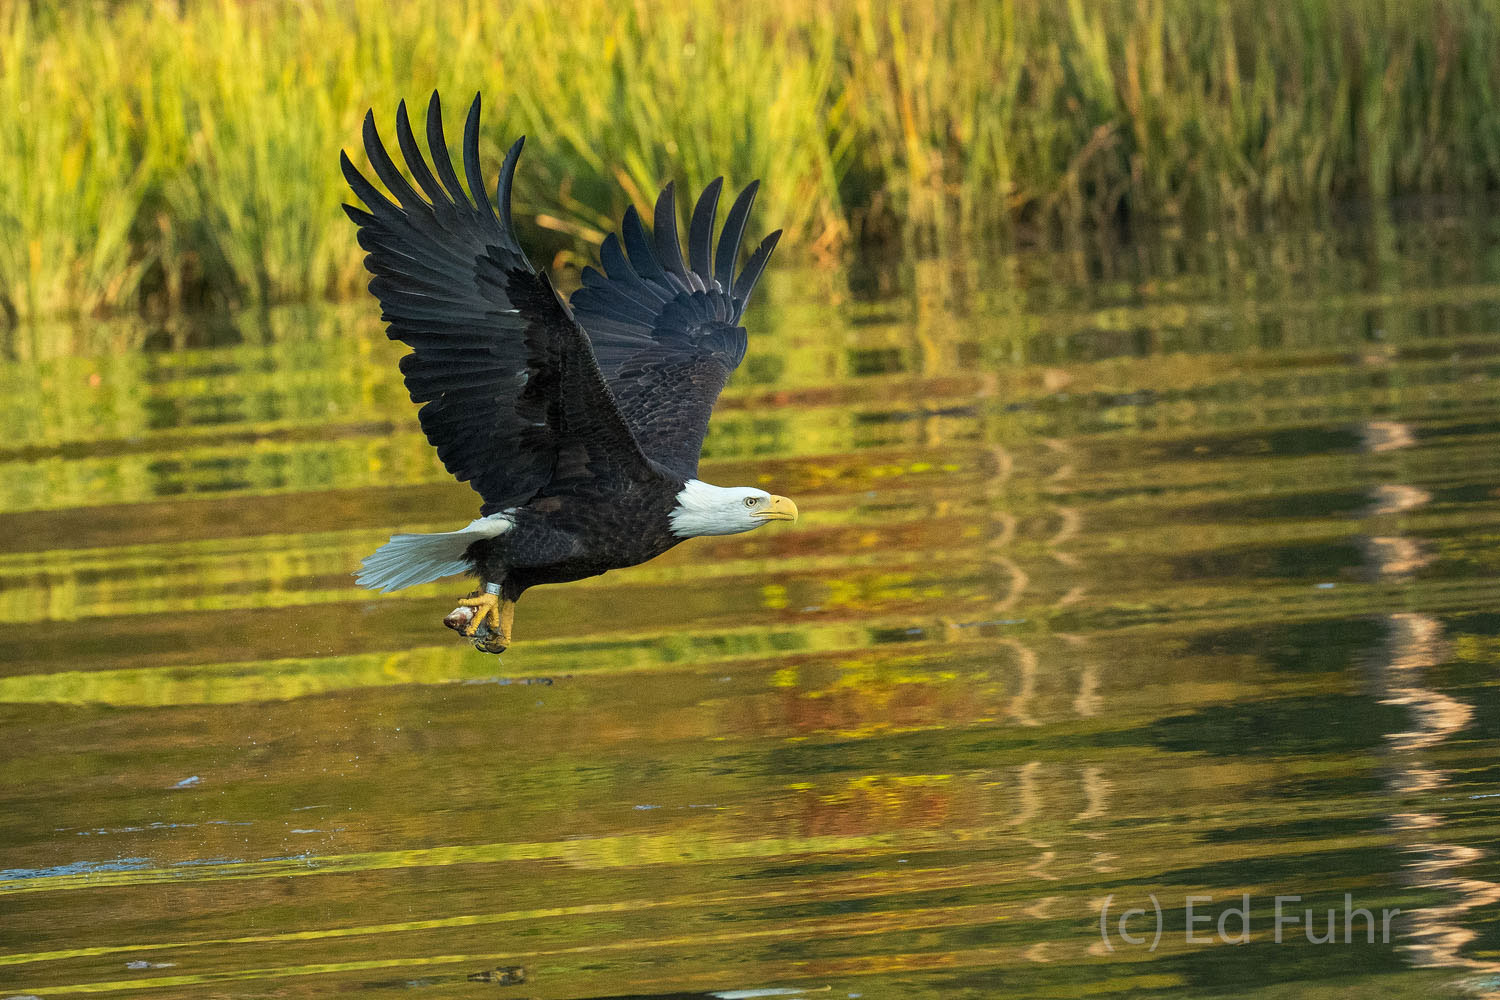 Nicknamed Bandit, a bald eagle flies with its catch across the autumn-colored waters of the James River.